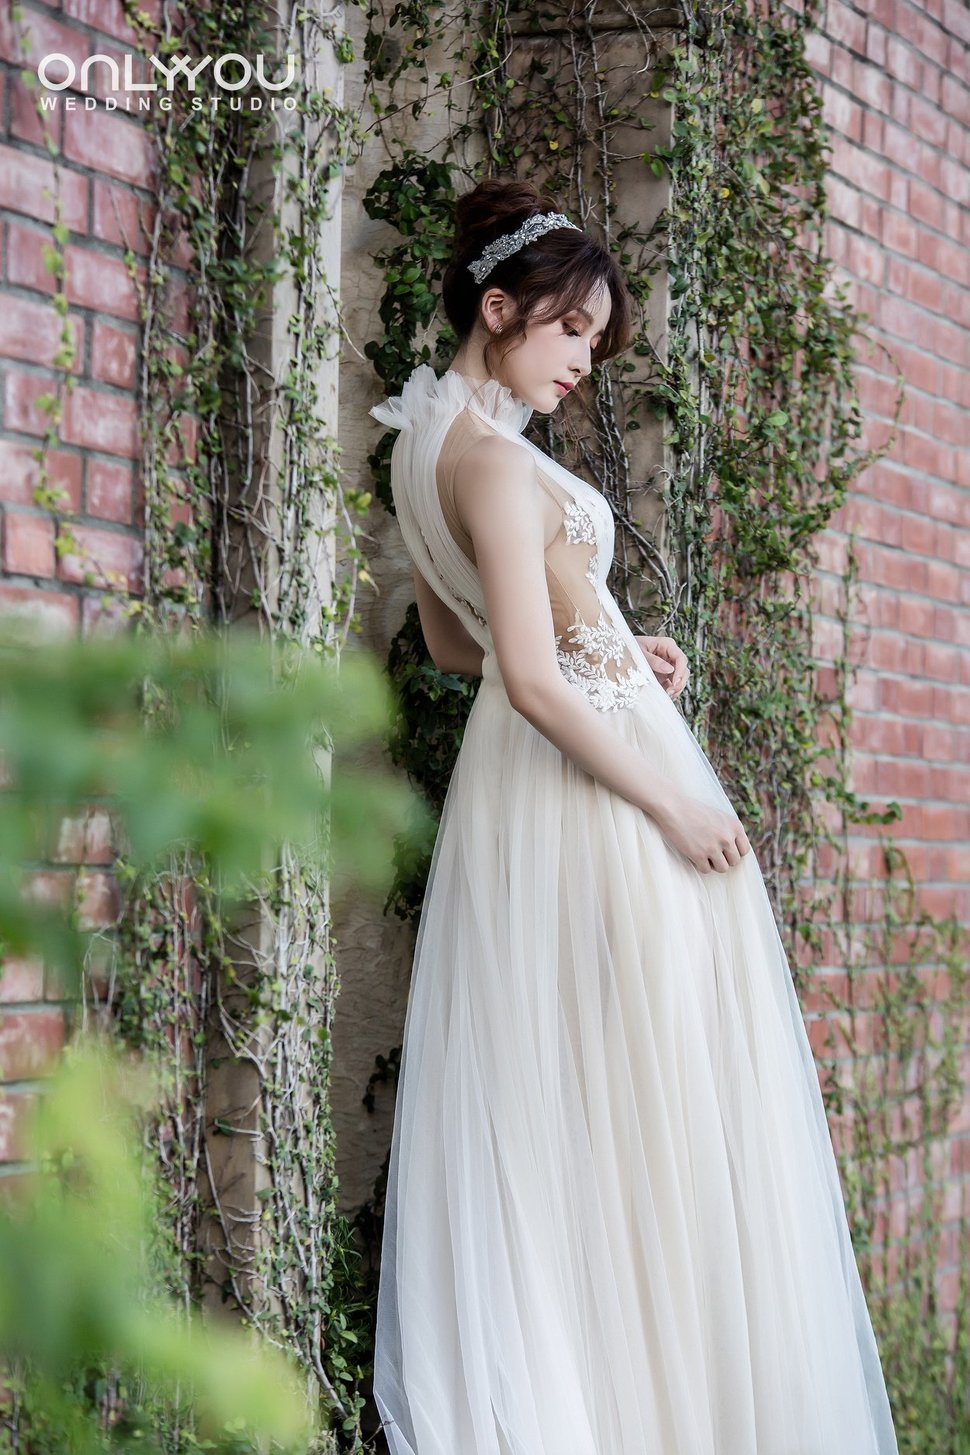 69267078_2340385692683730_4802678377947332608_o - ONLY YOU 唯你婚紗攝影《結婚吧》